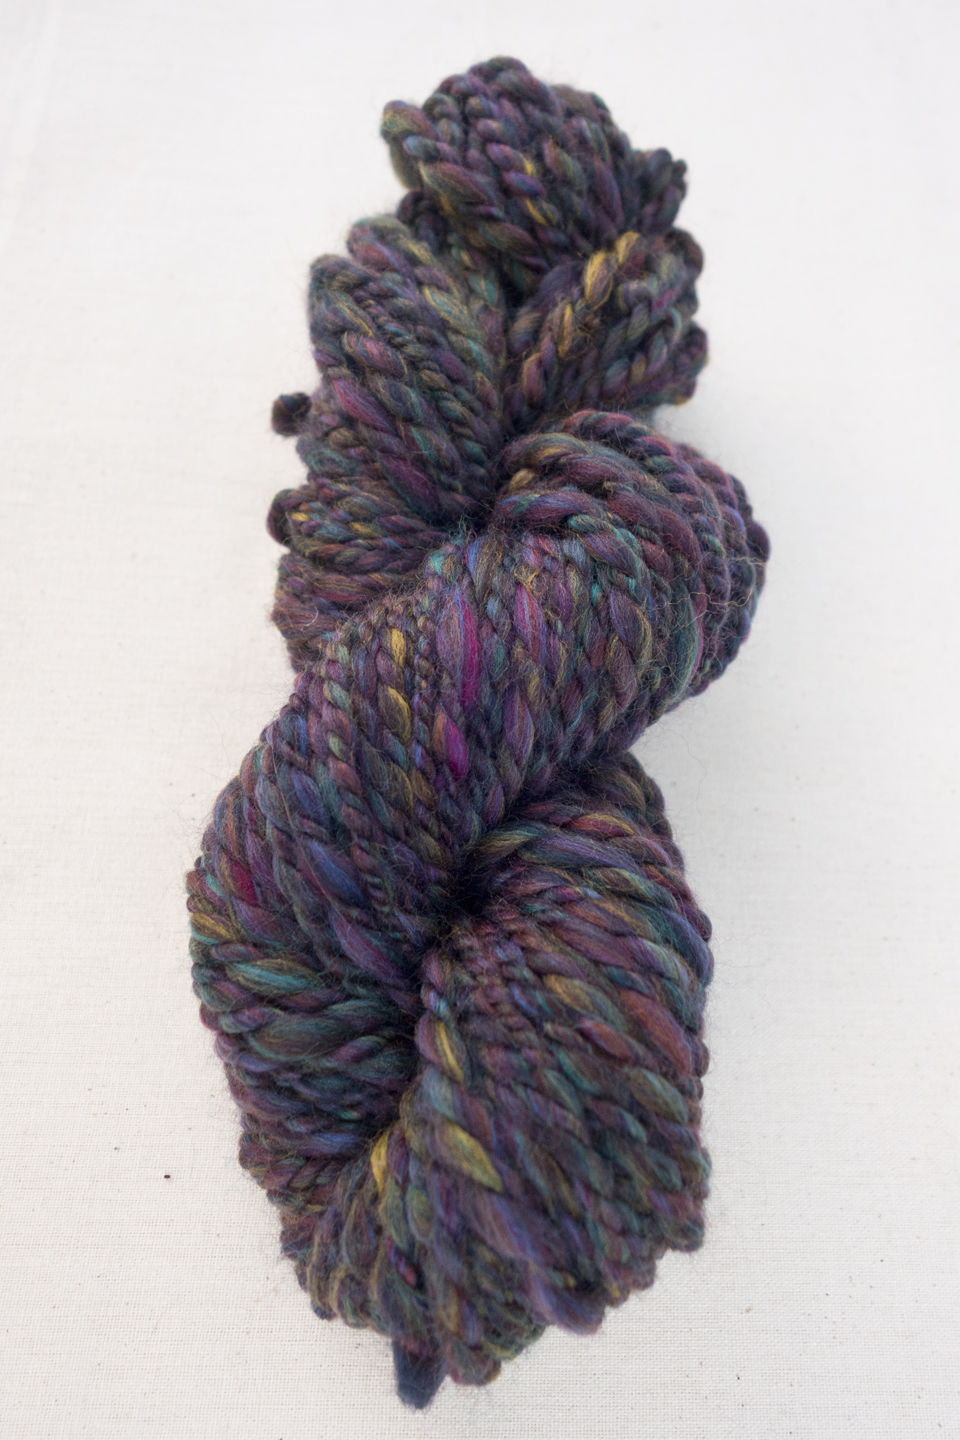 Handspun_Merino_Virginia Farm_October2016_1.jpg